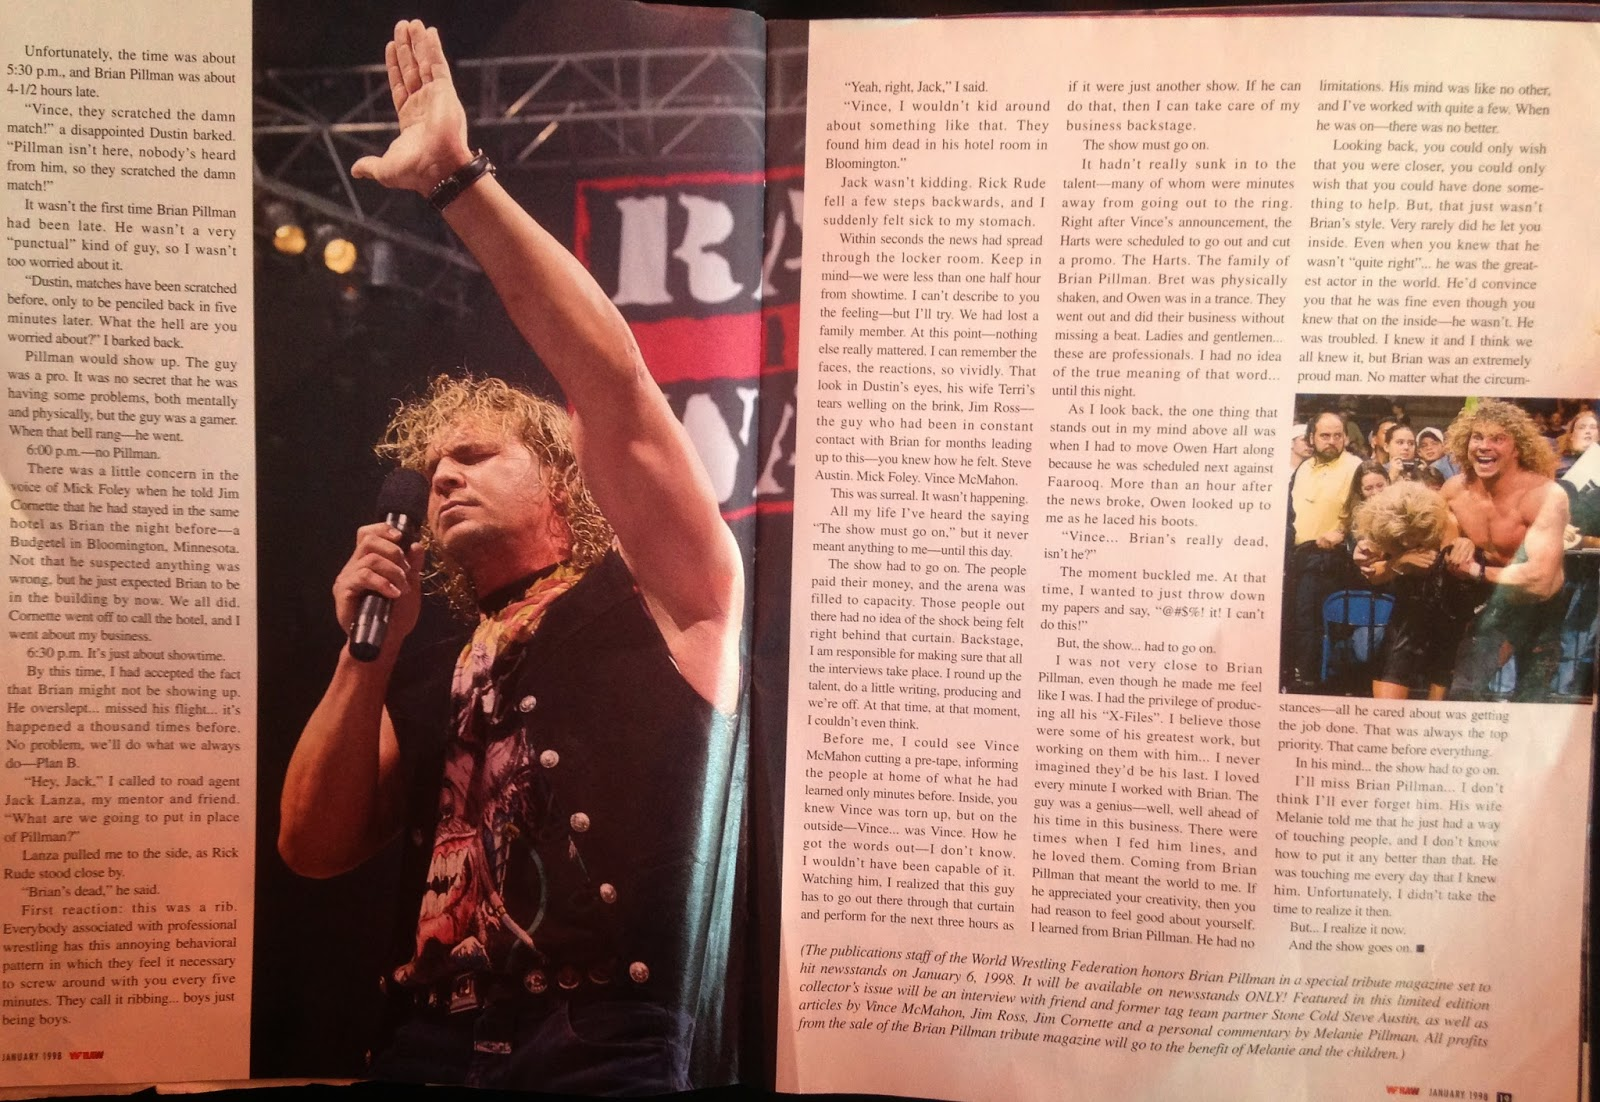 WWE: WWF RAW MAGAZINE - January 1998 - A report on the day Brian Pillman died